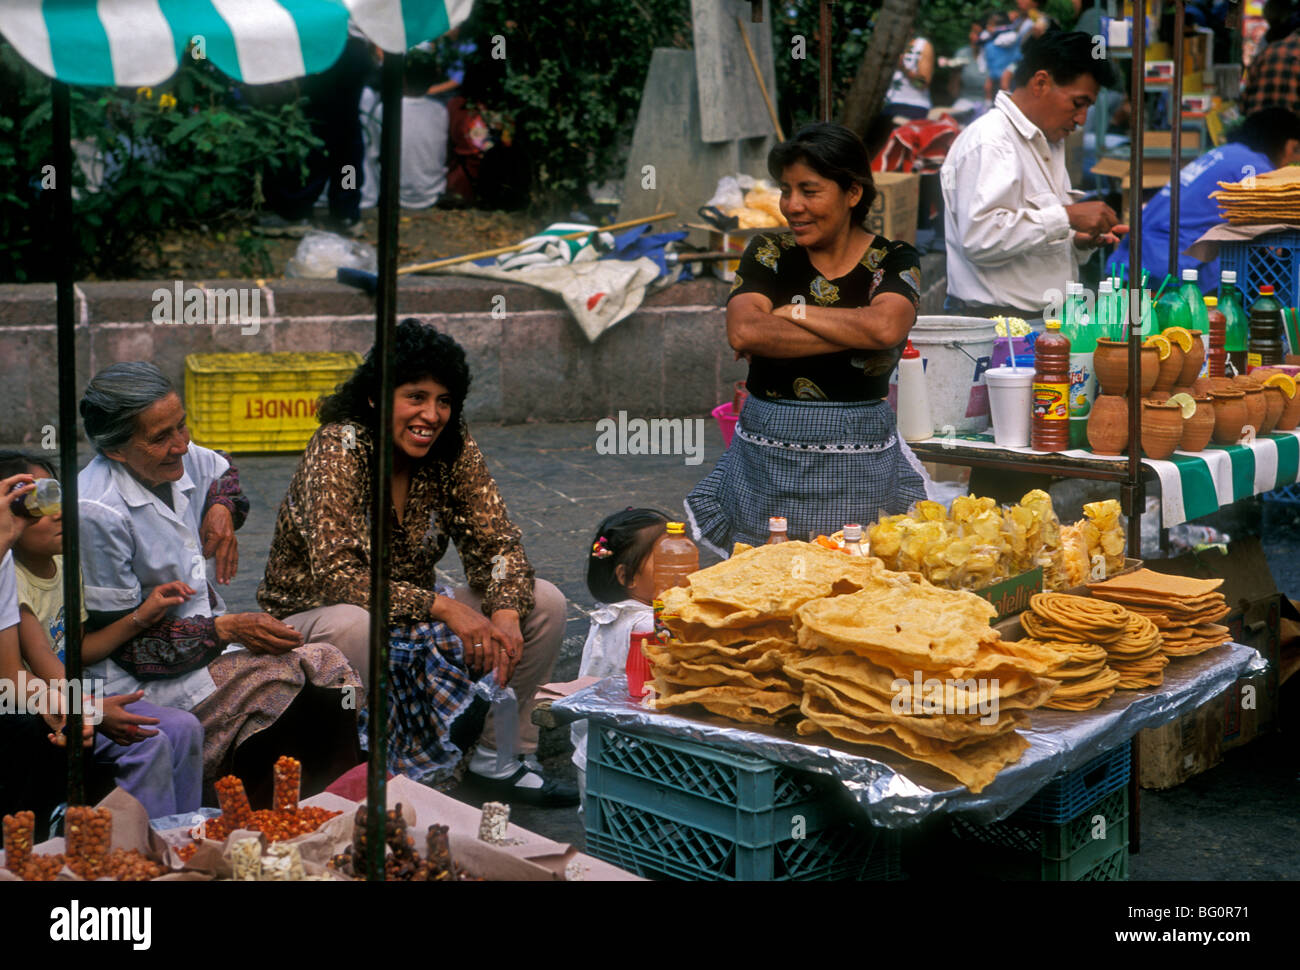 Street Vendors Selling Mexican Food